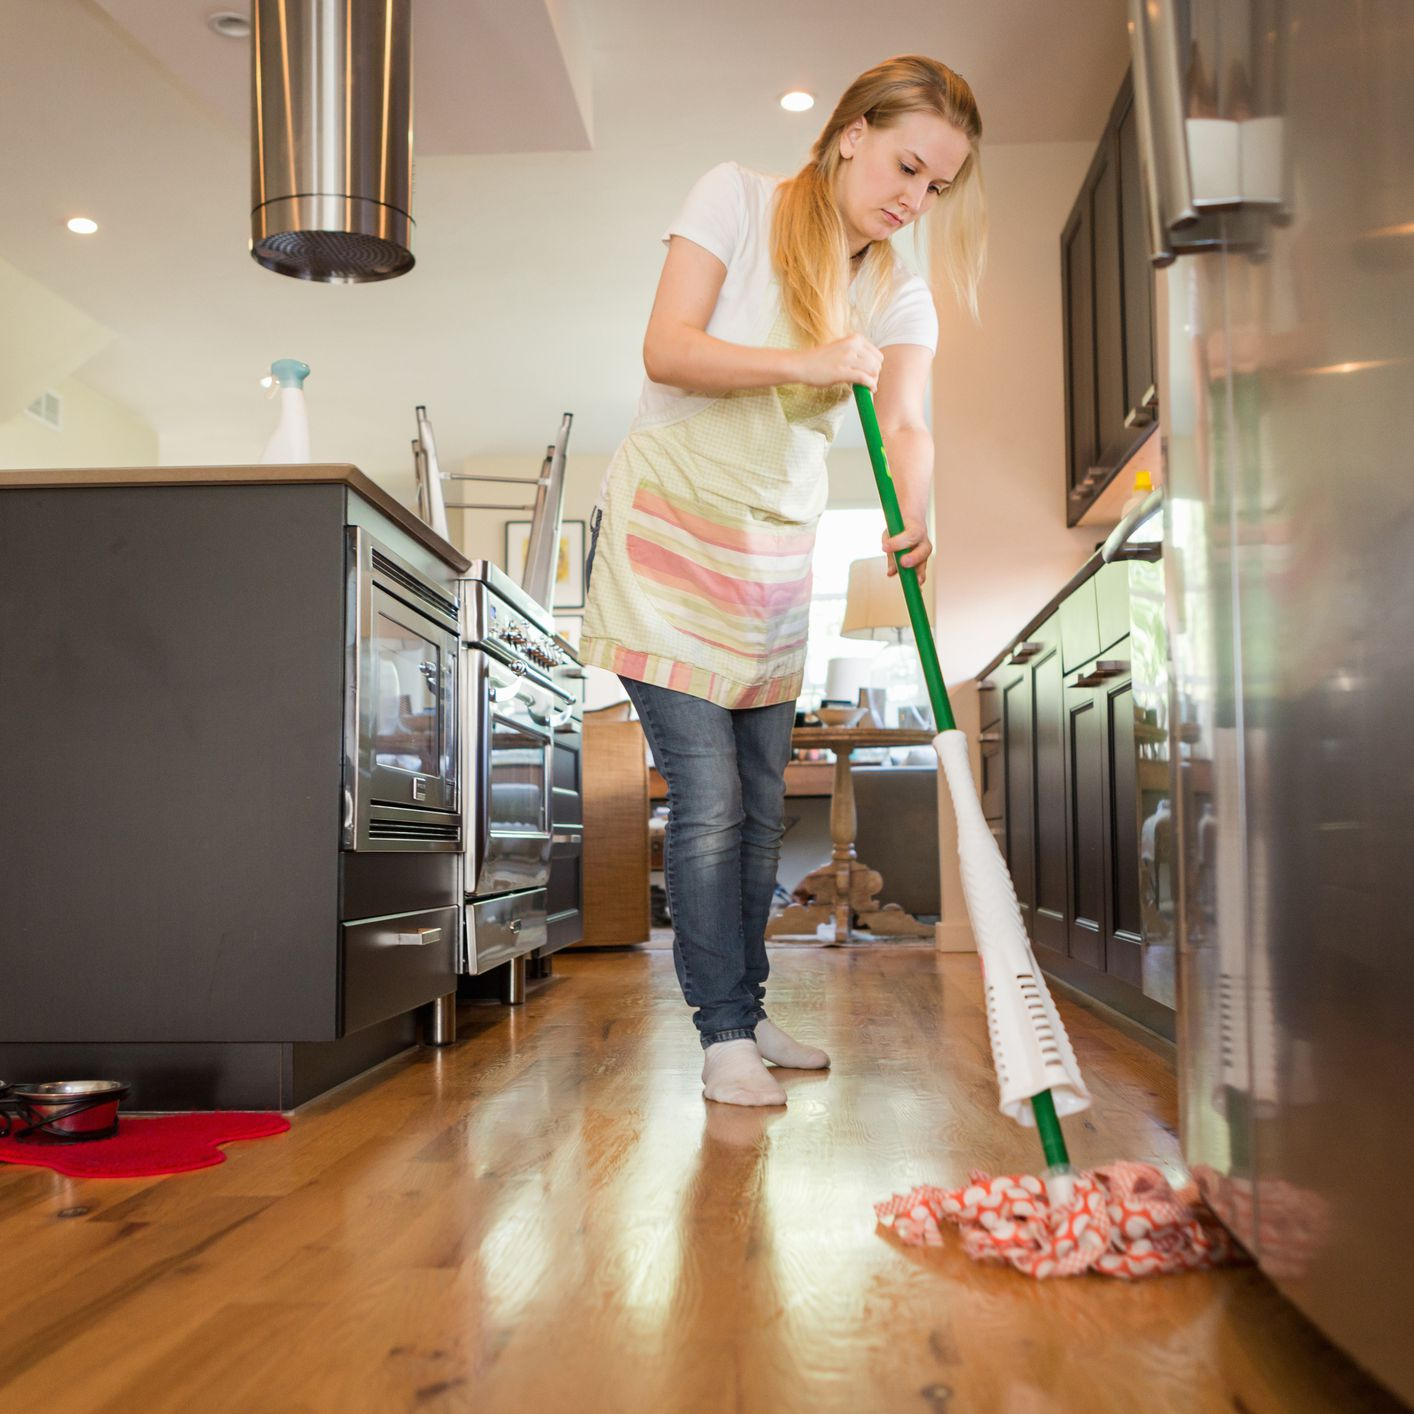 9 Laminate Floor Mistakes And How To Fix Them